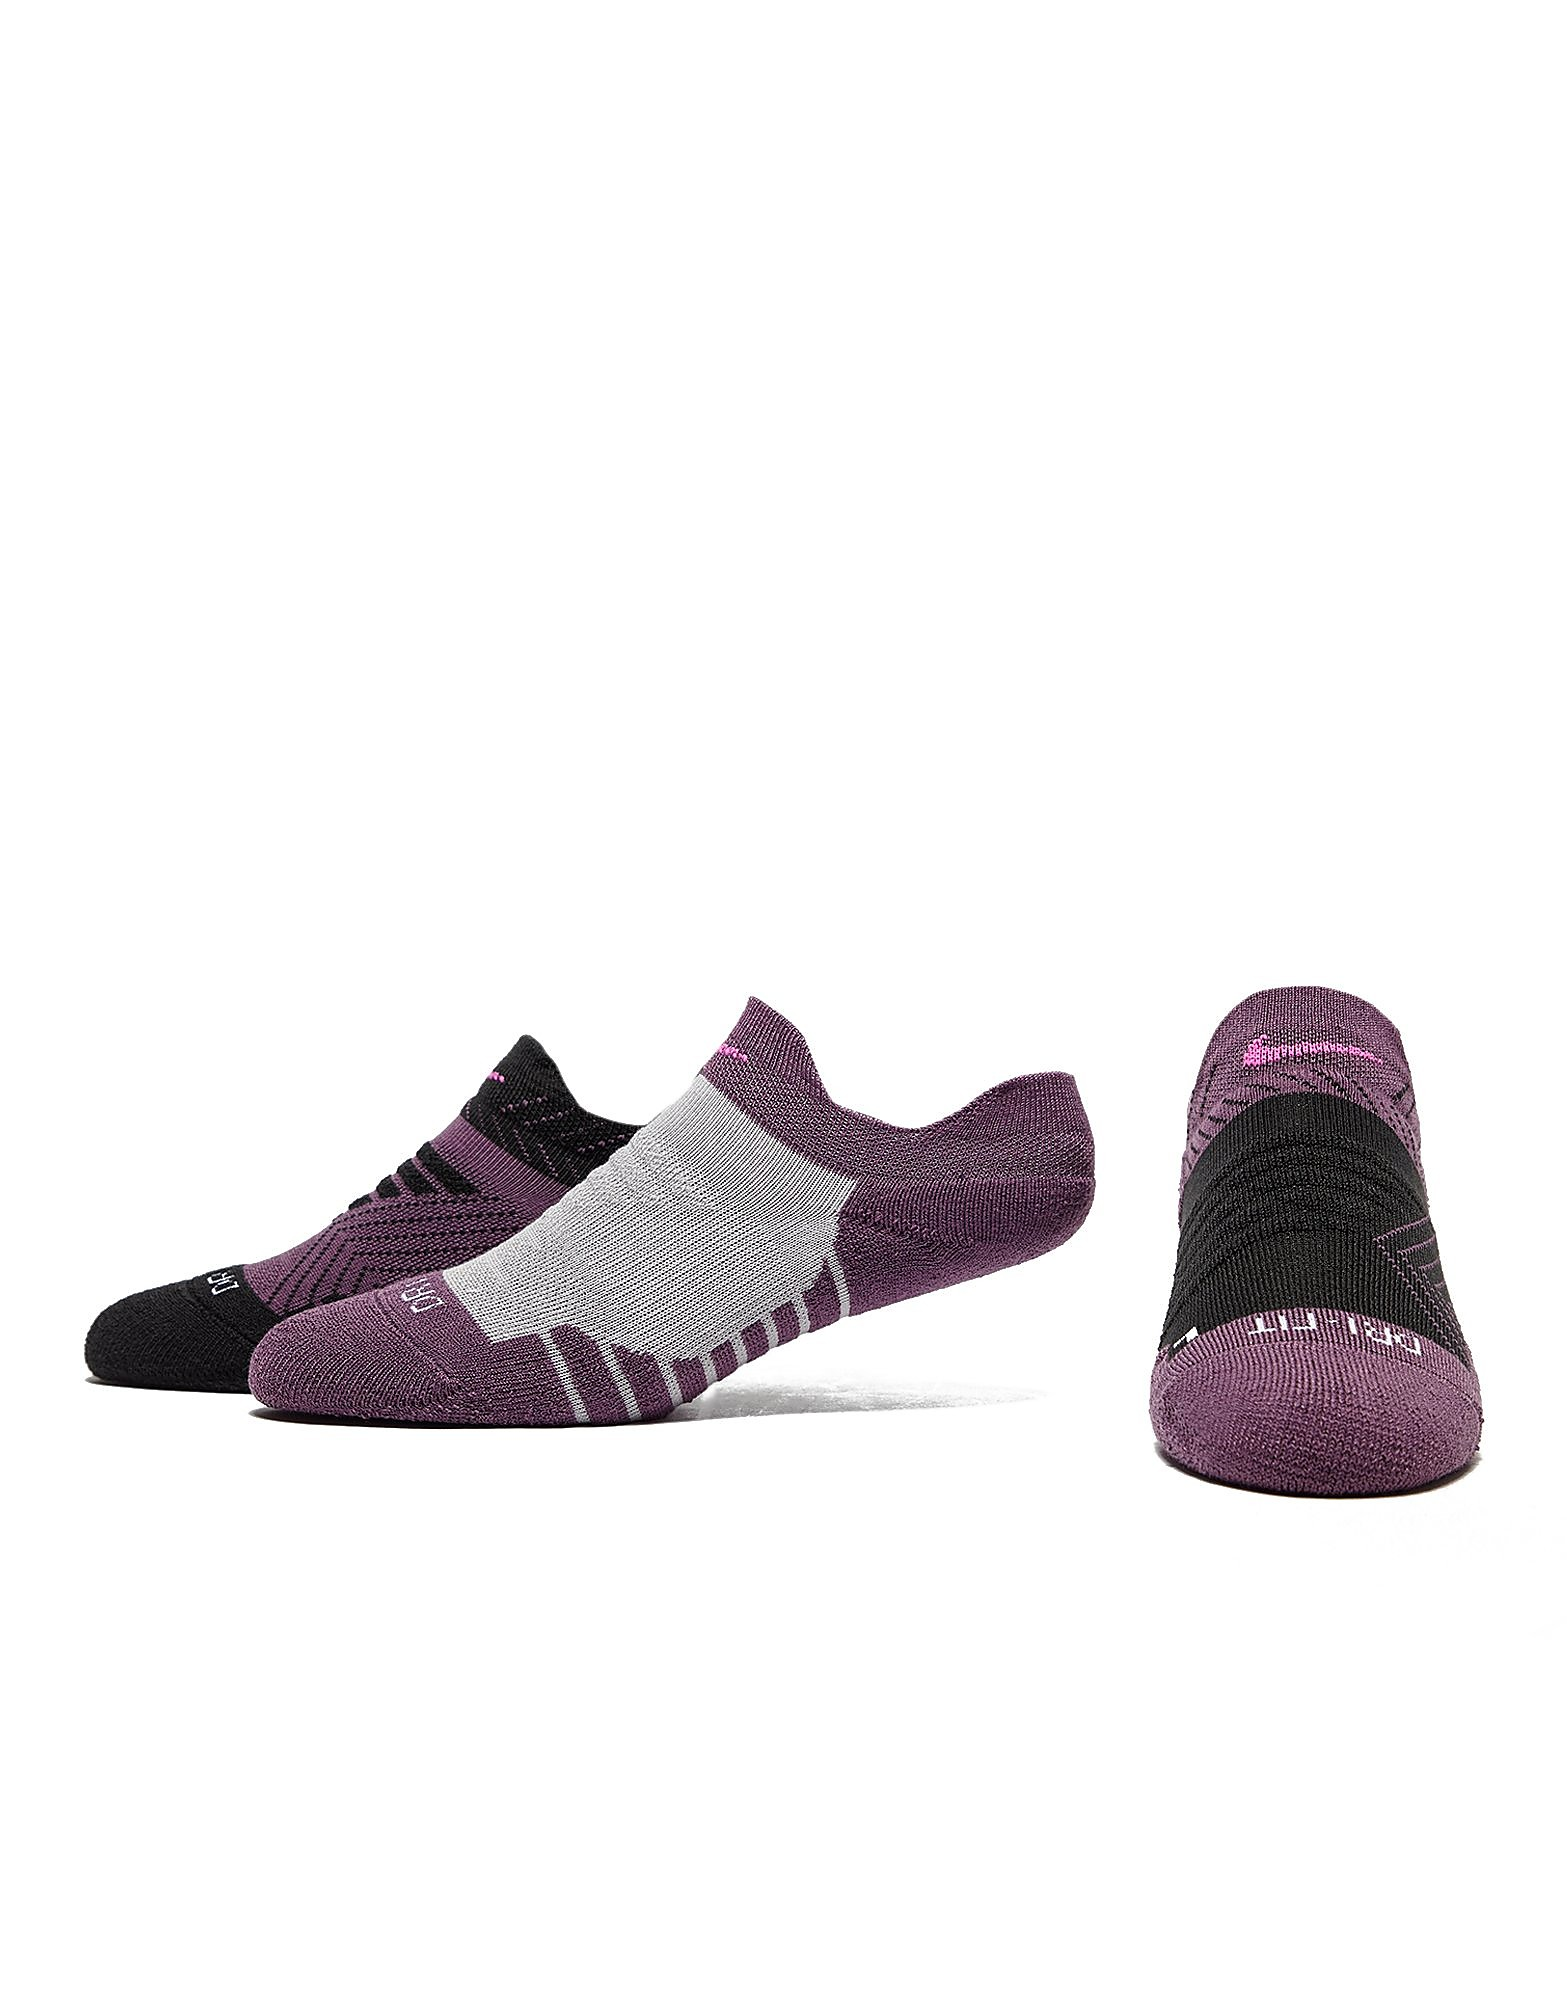 Nike pack de 3 calcetines invisibles Cushion